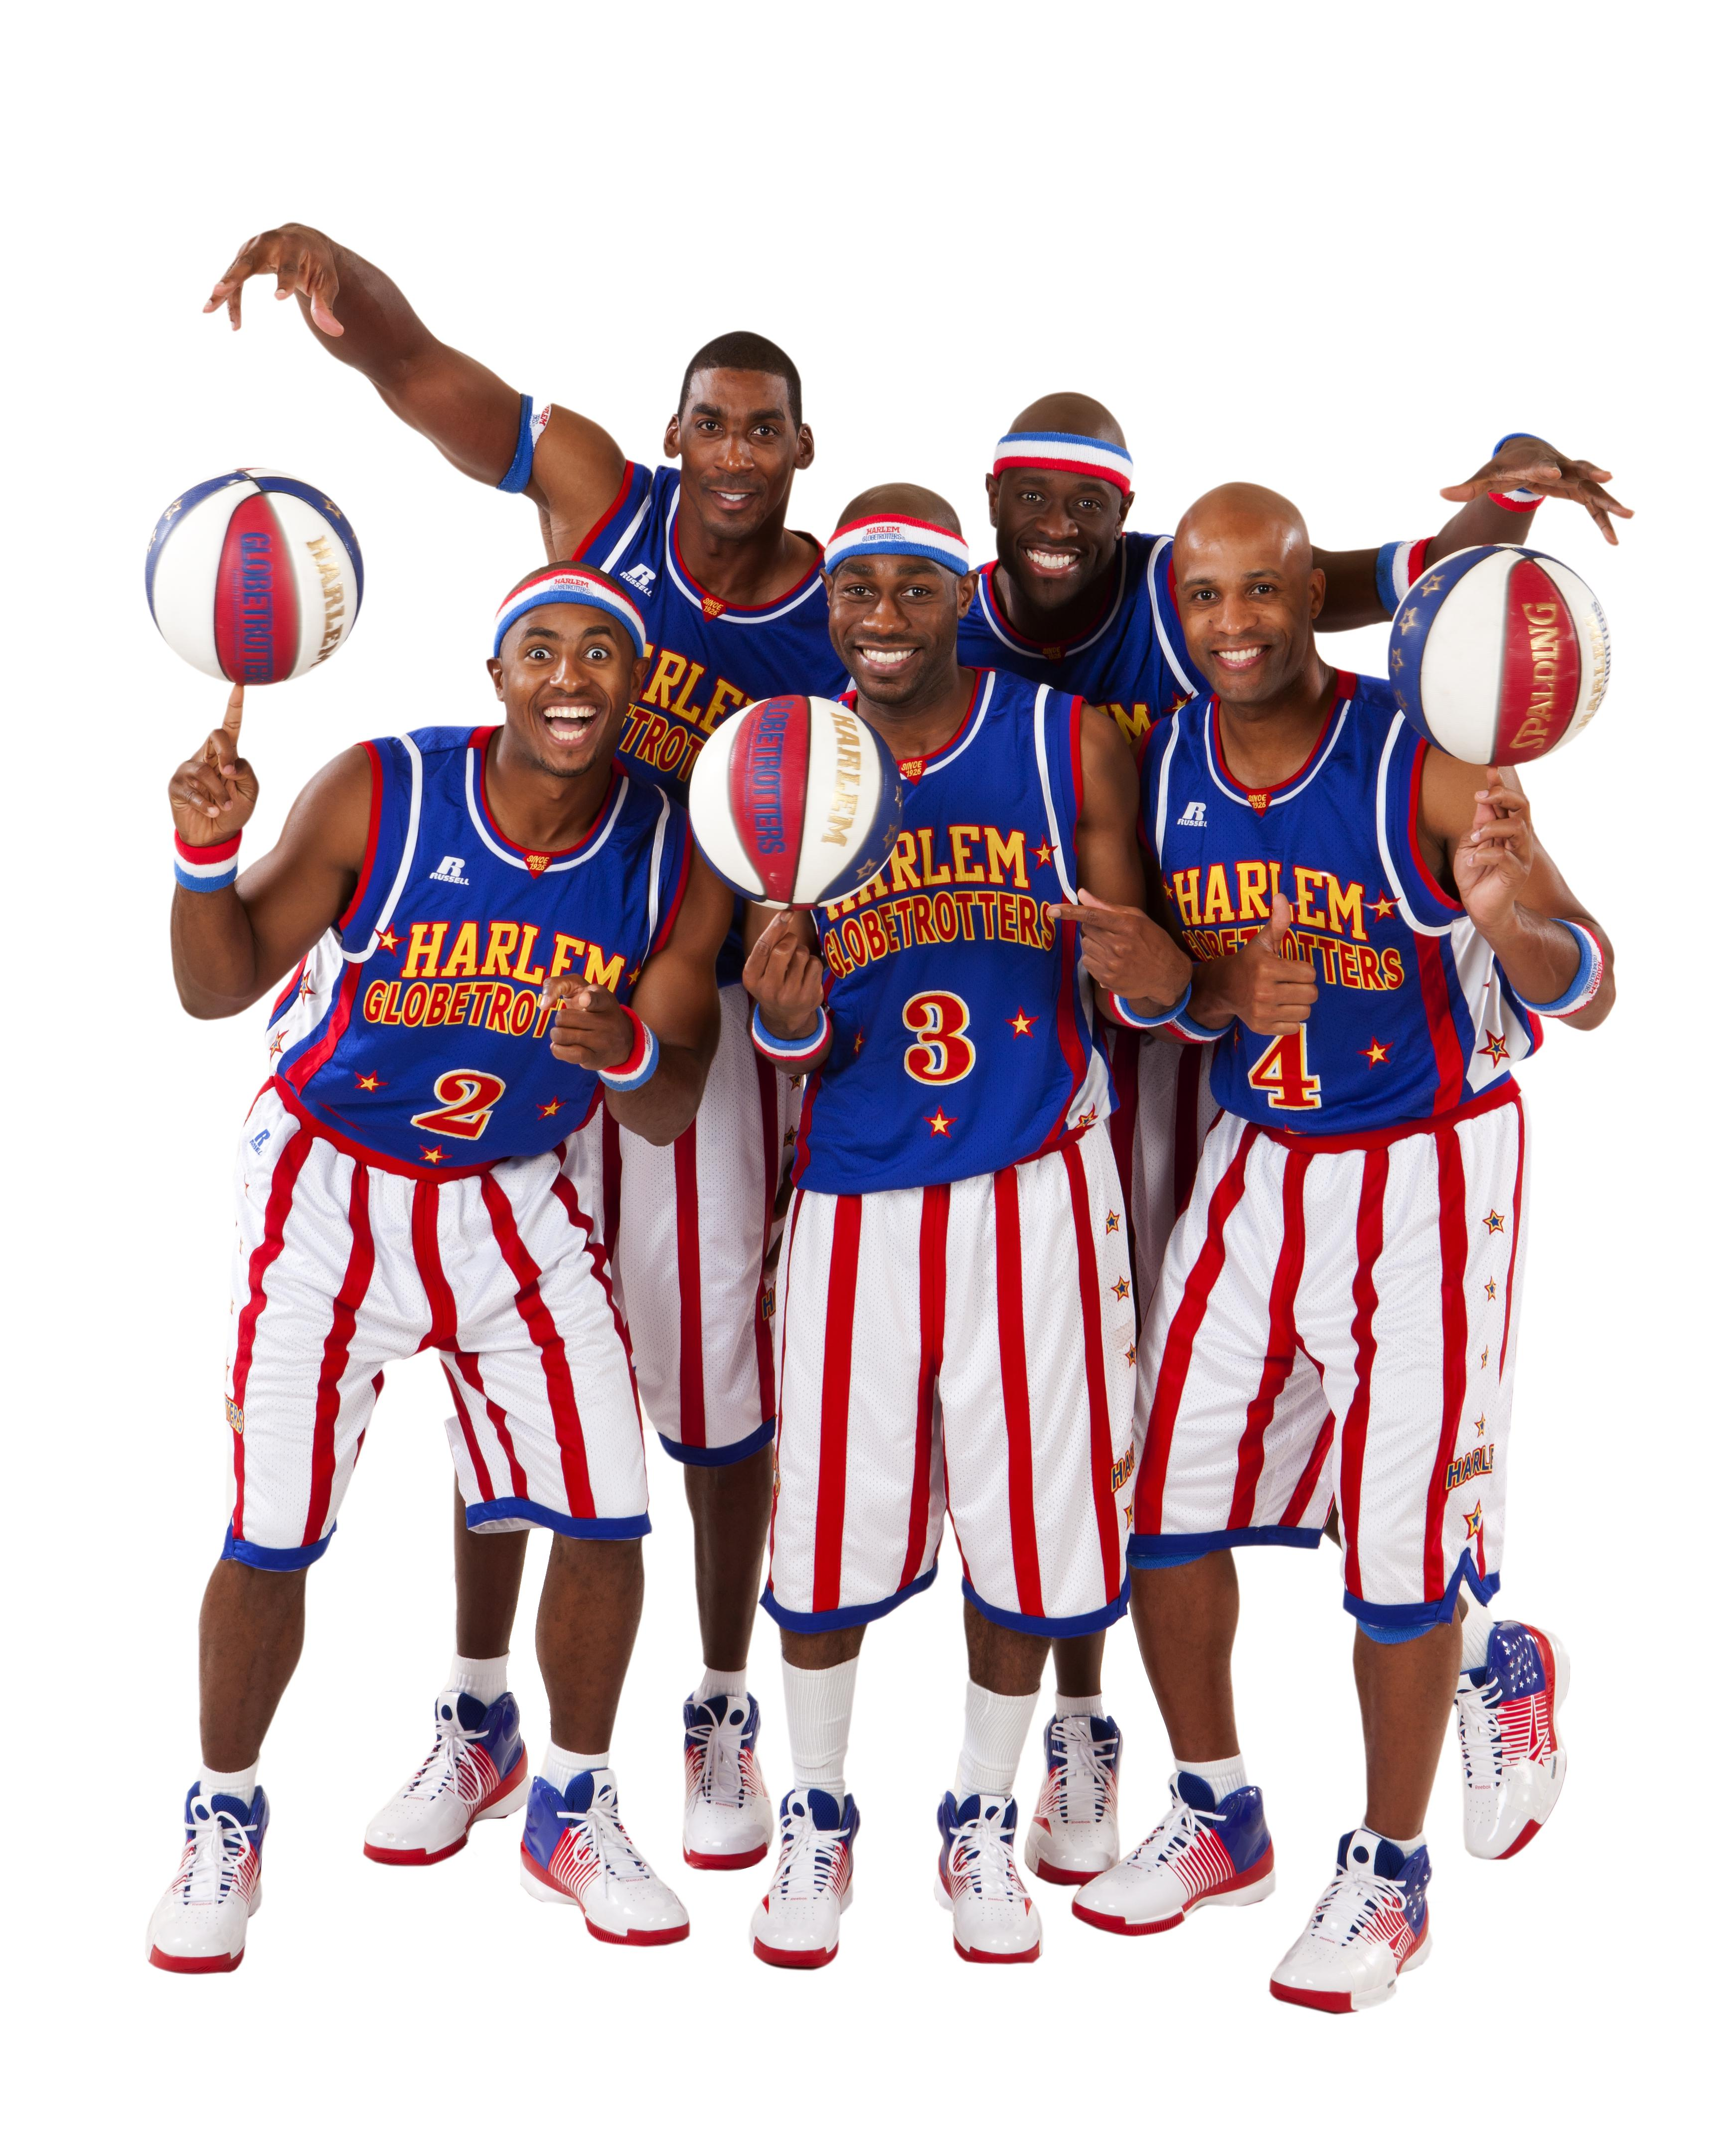 Anniversary of the Harlem Globetrotters First Game